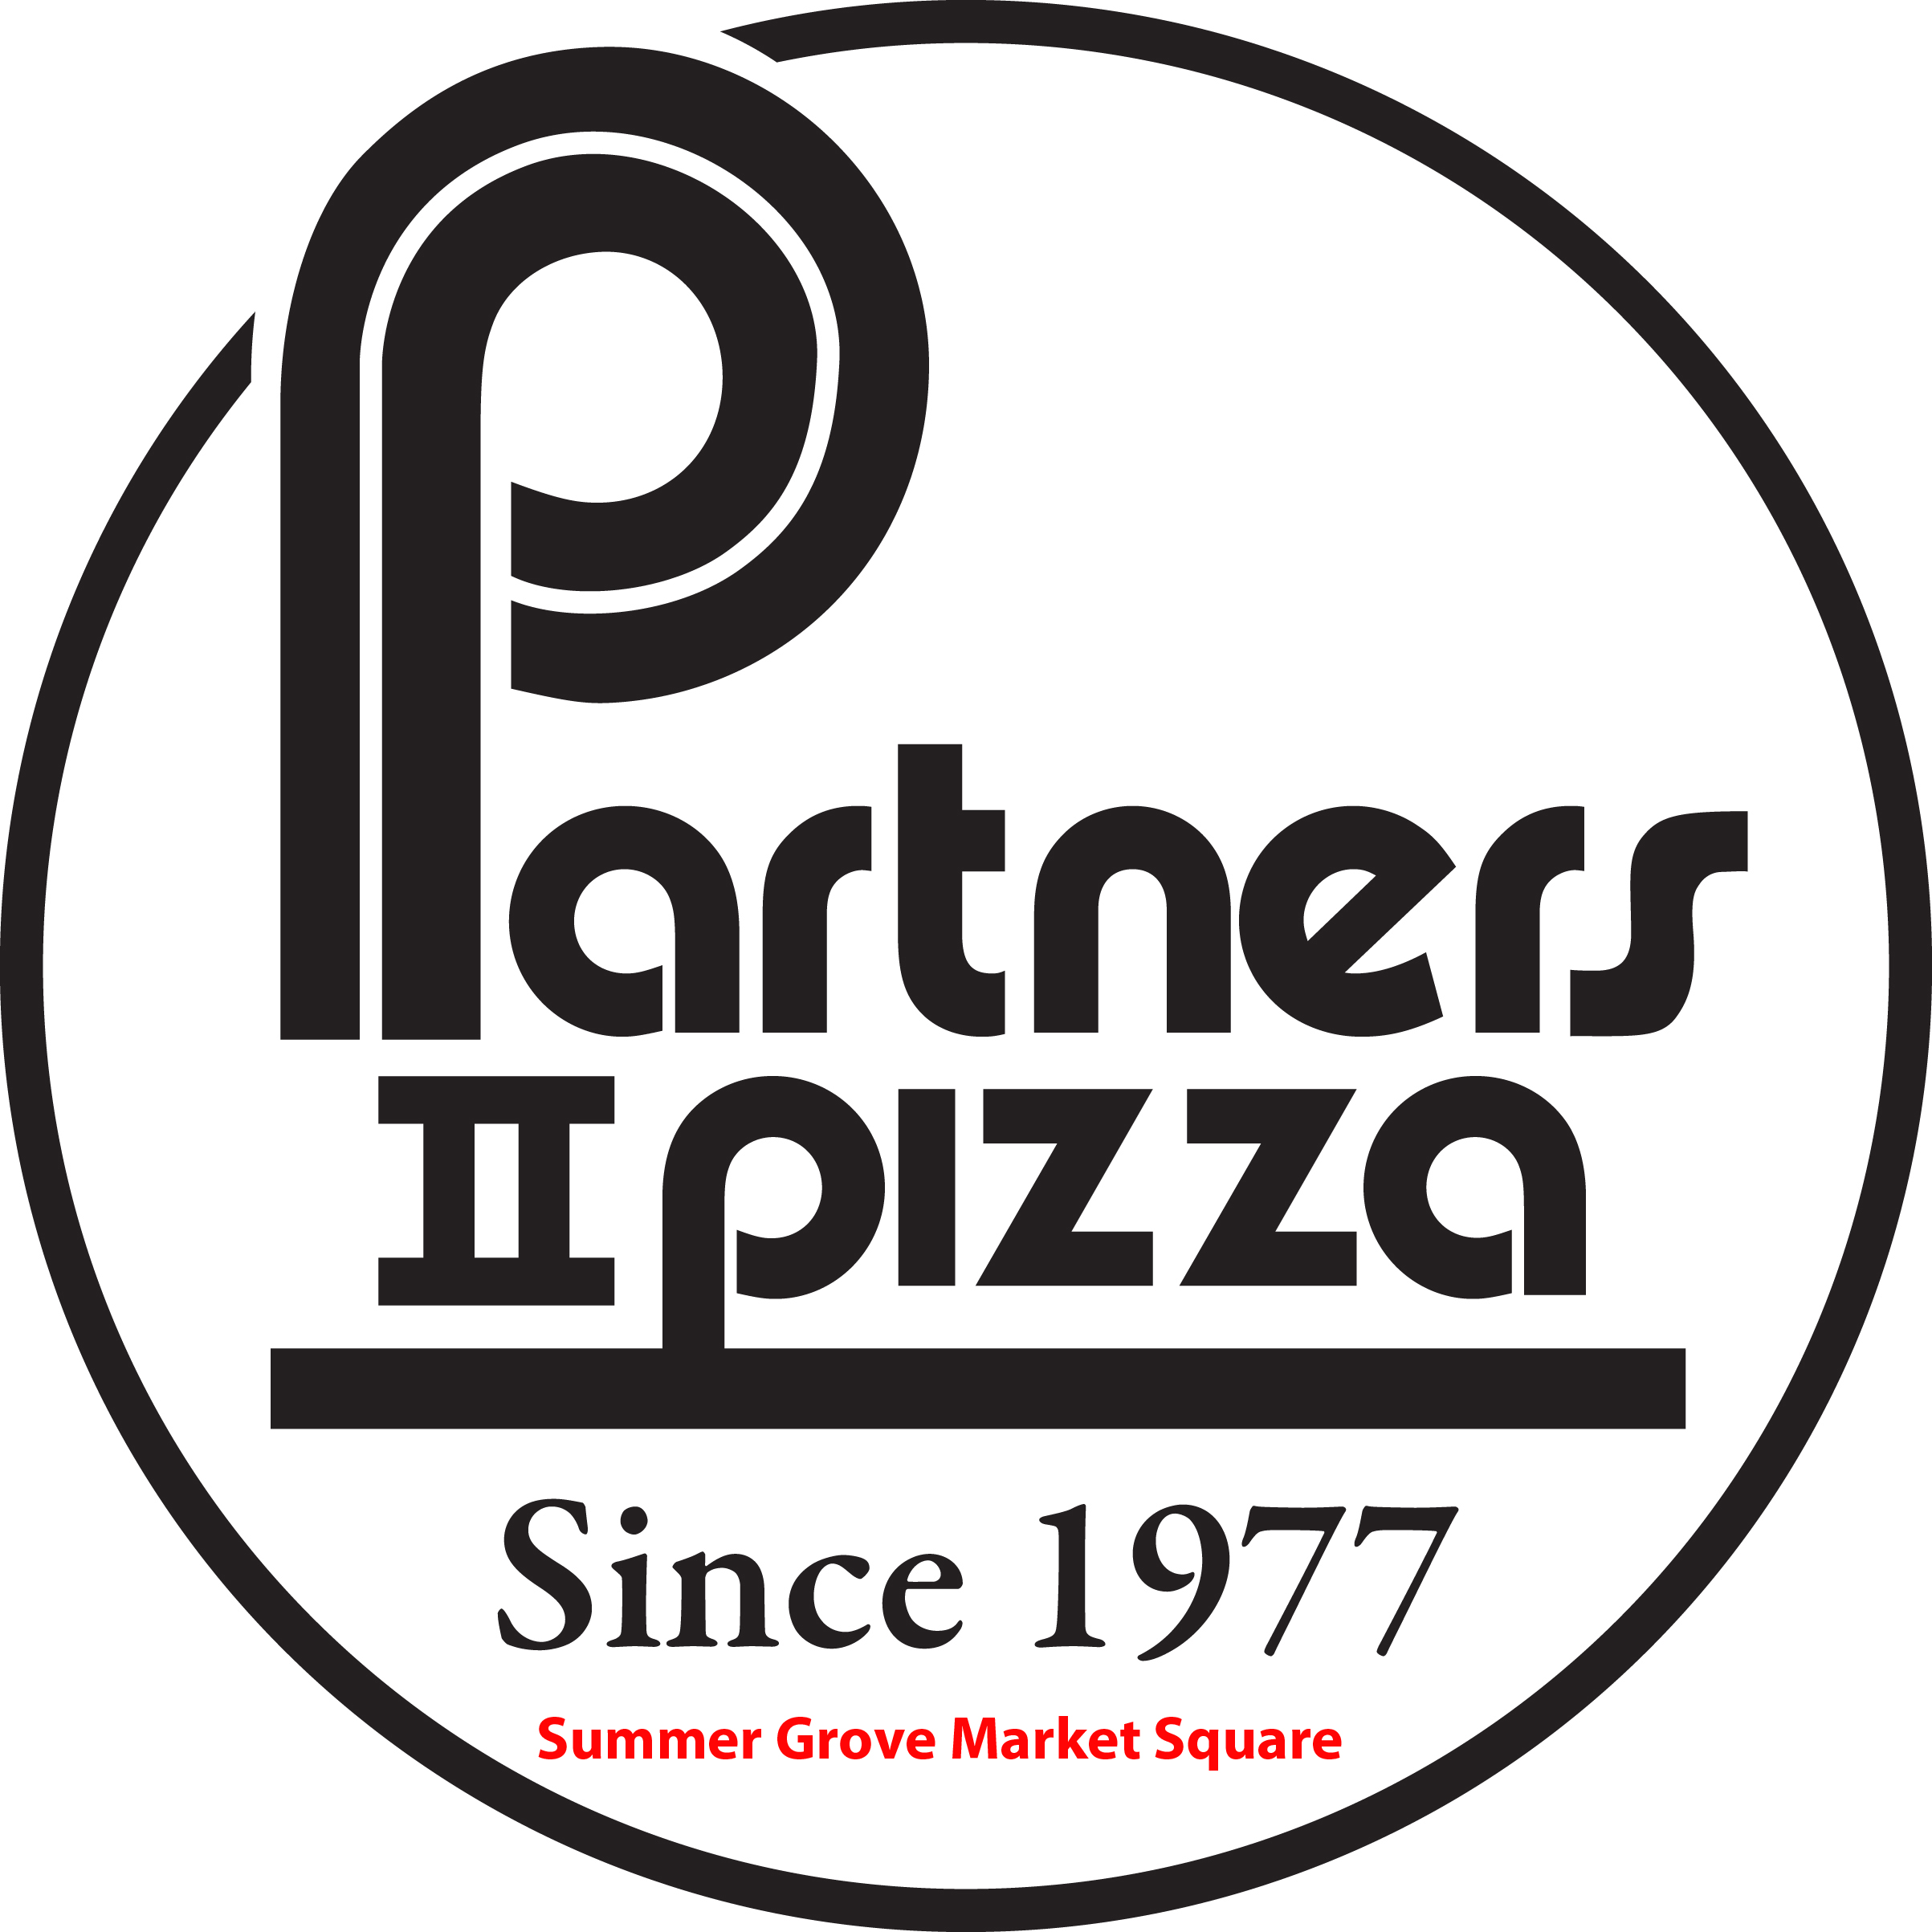 Summer Grove Market Square - Partners II Pizza